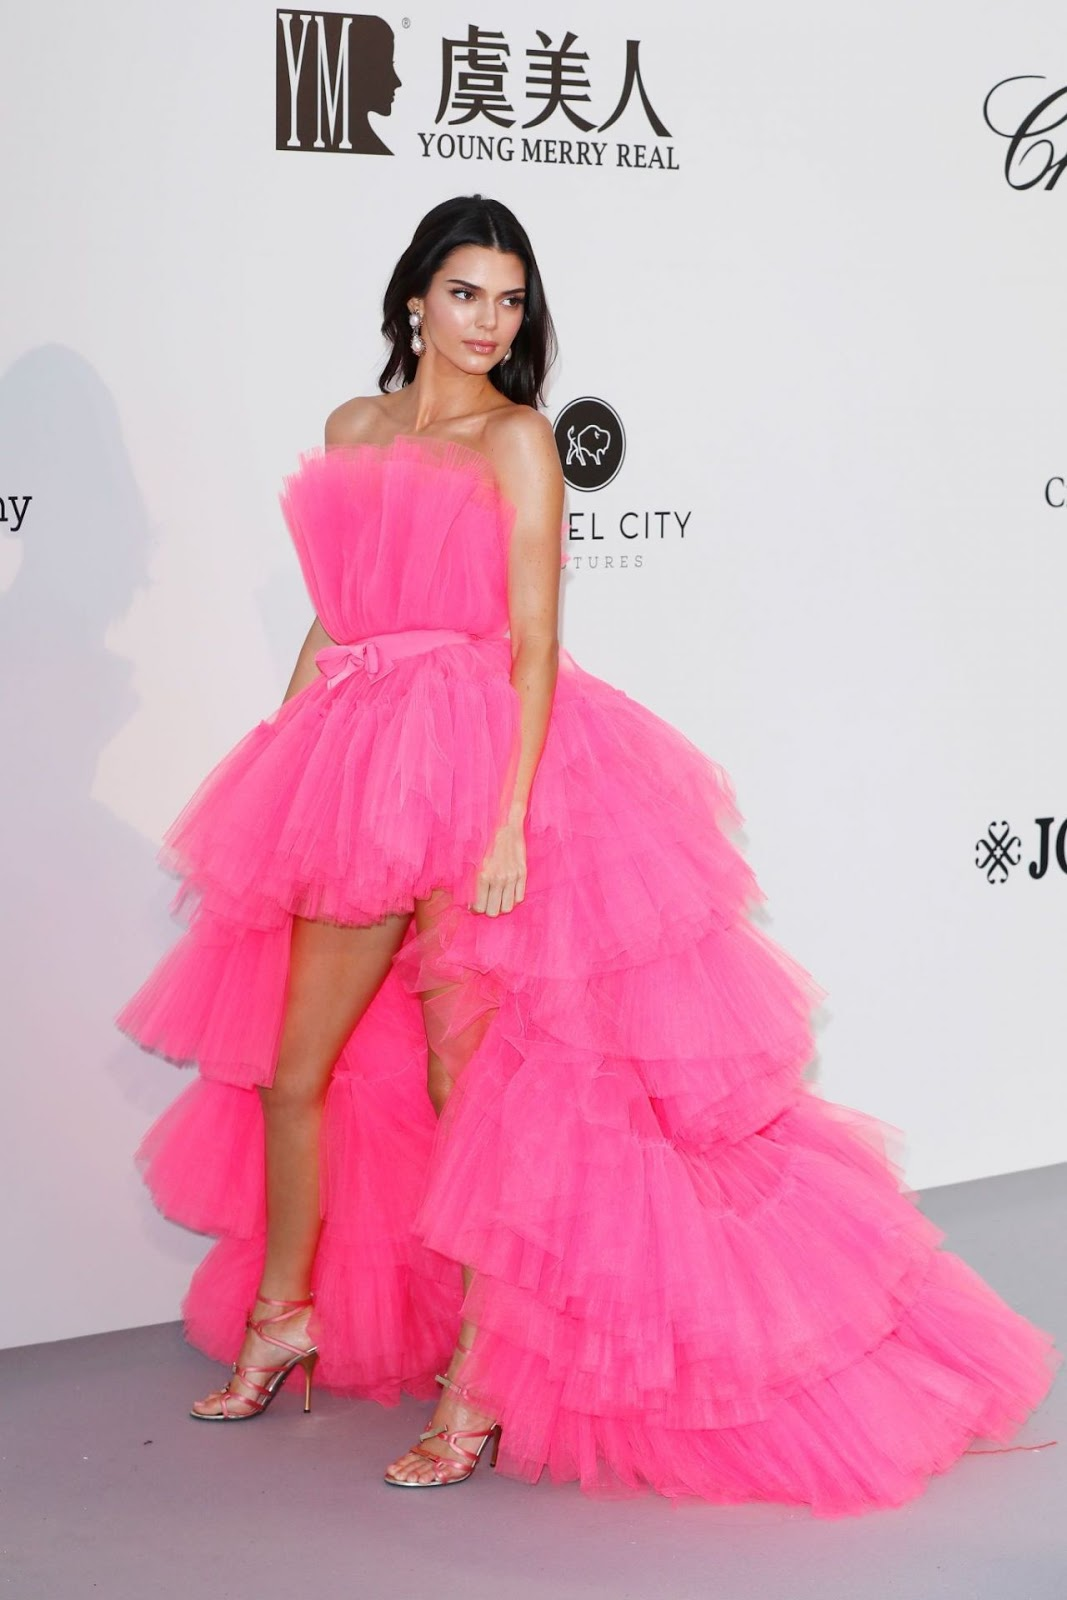 Kendall Jenner wearing Giambattista Valli x H&M at the 2019 amfAR Gala in Cannes, France